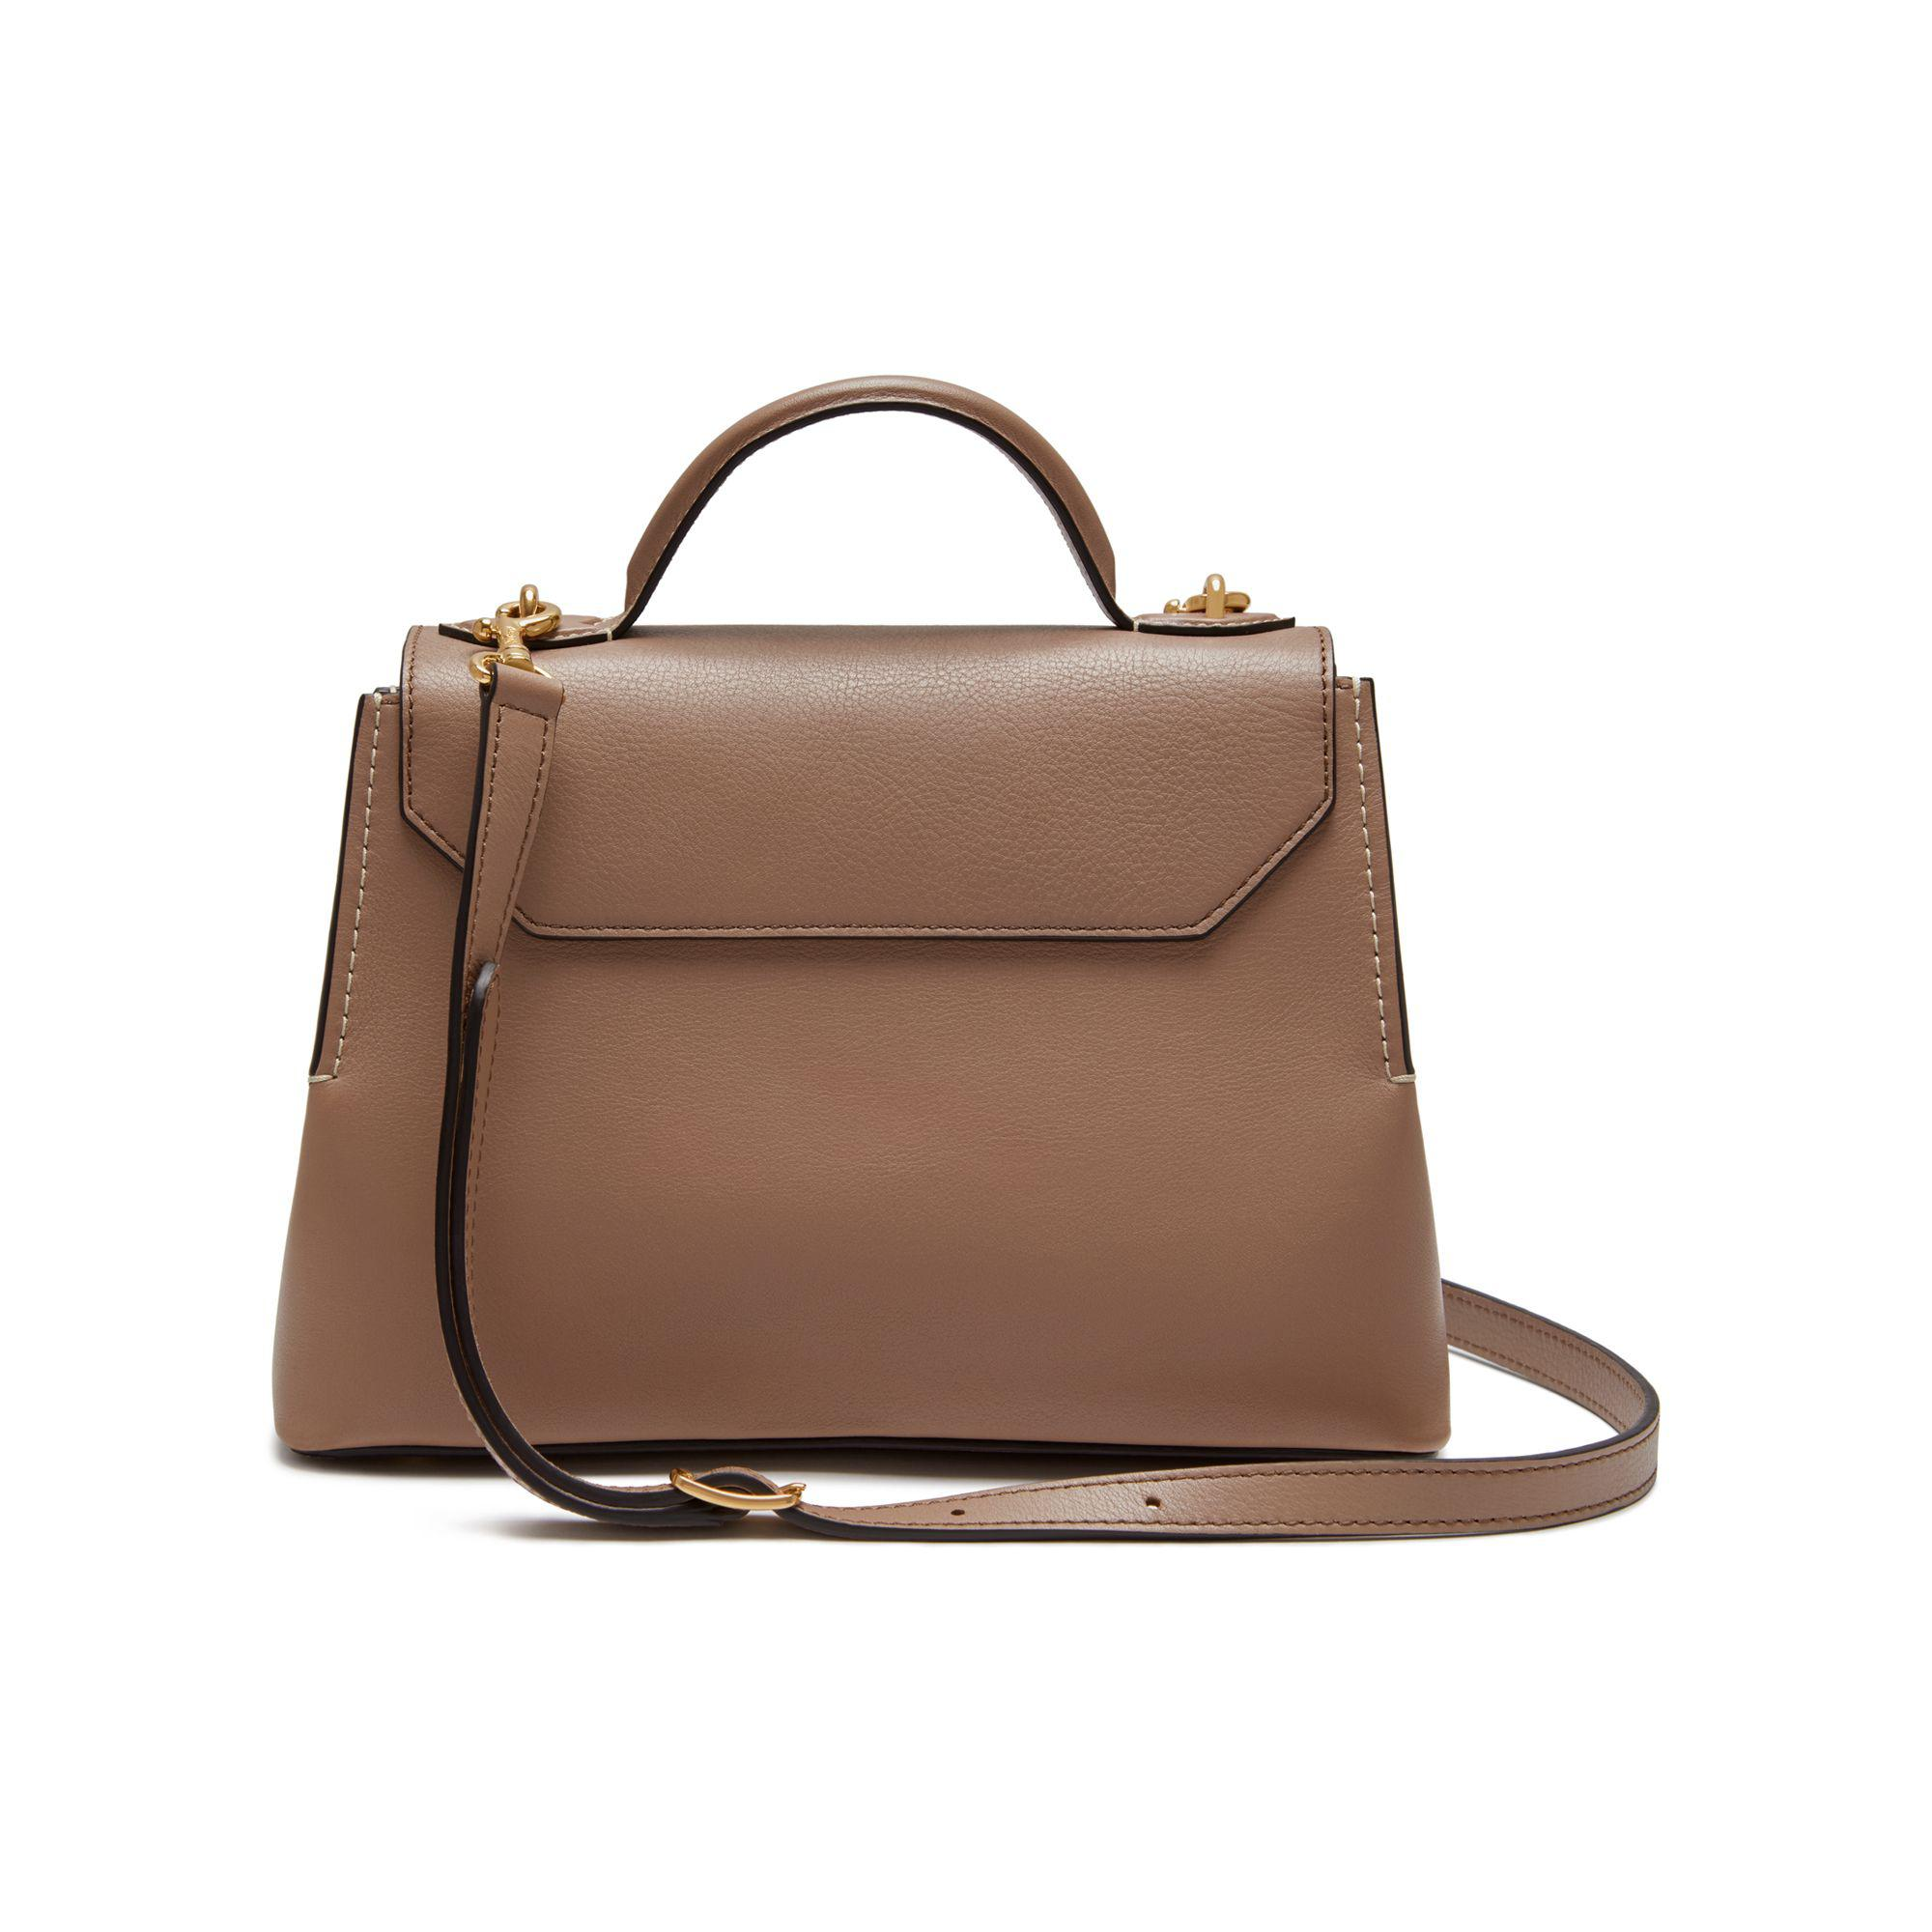 Mulberry Mini Seaton in Brown - Lyst 2a066a1218b0a